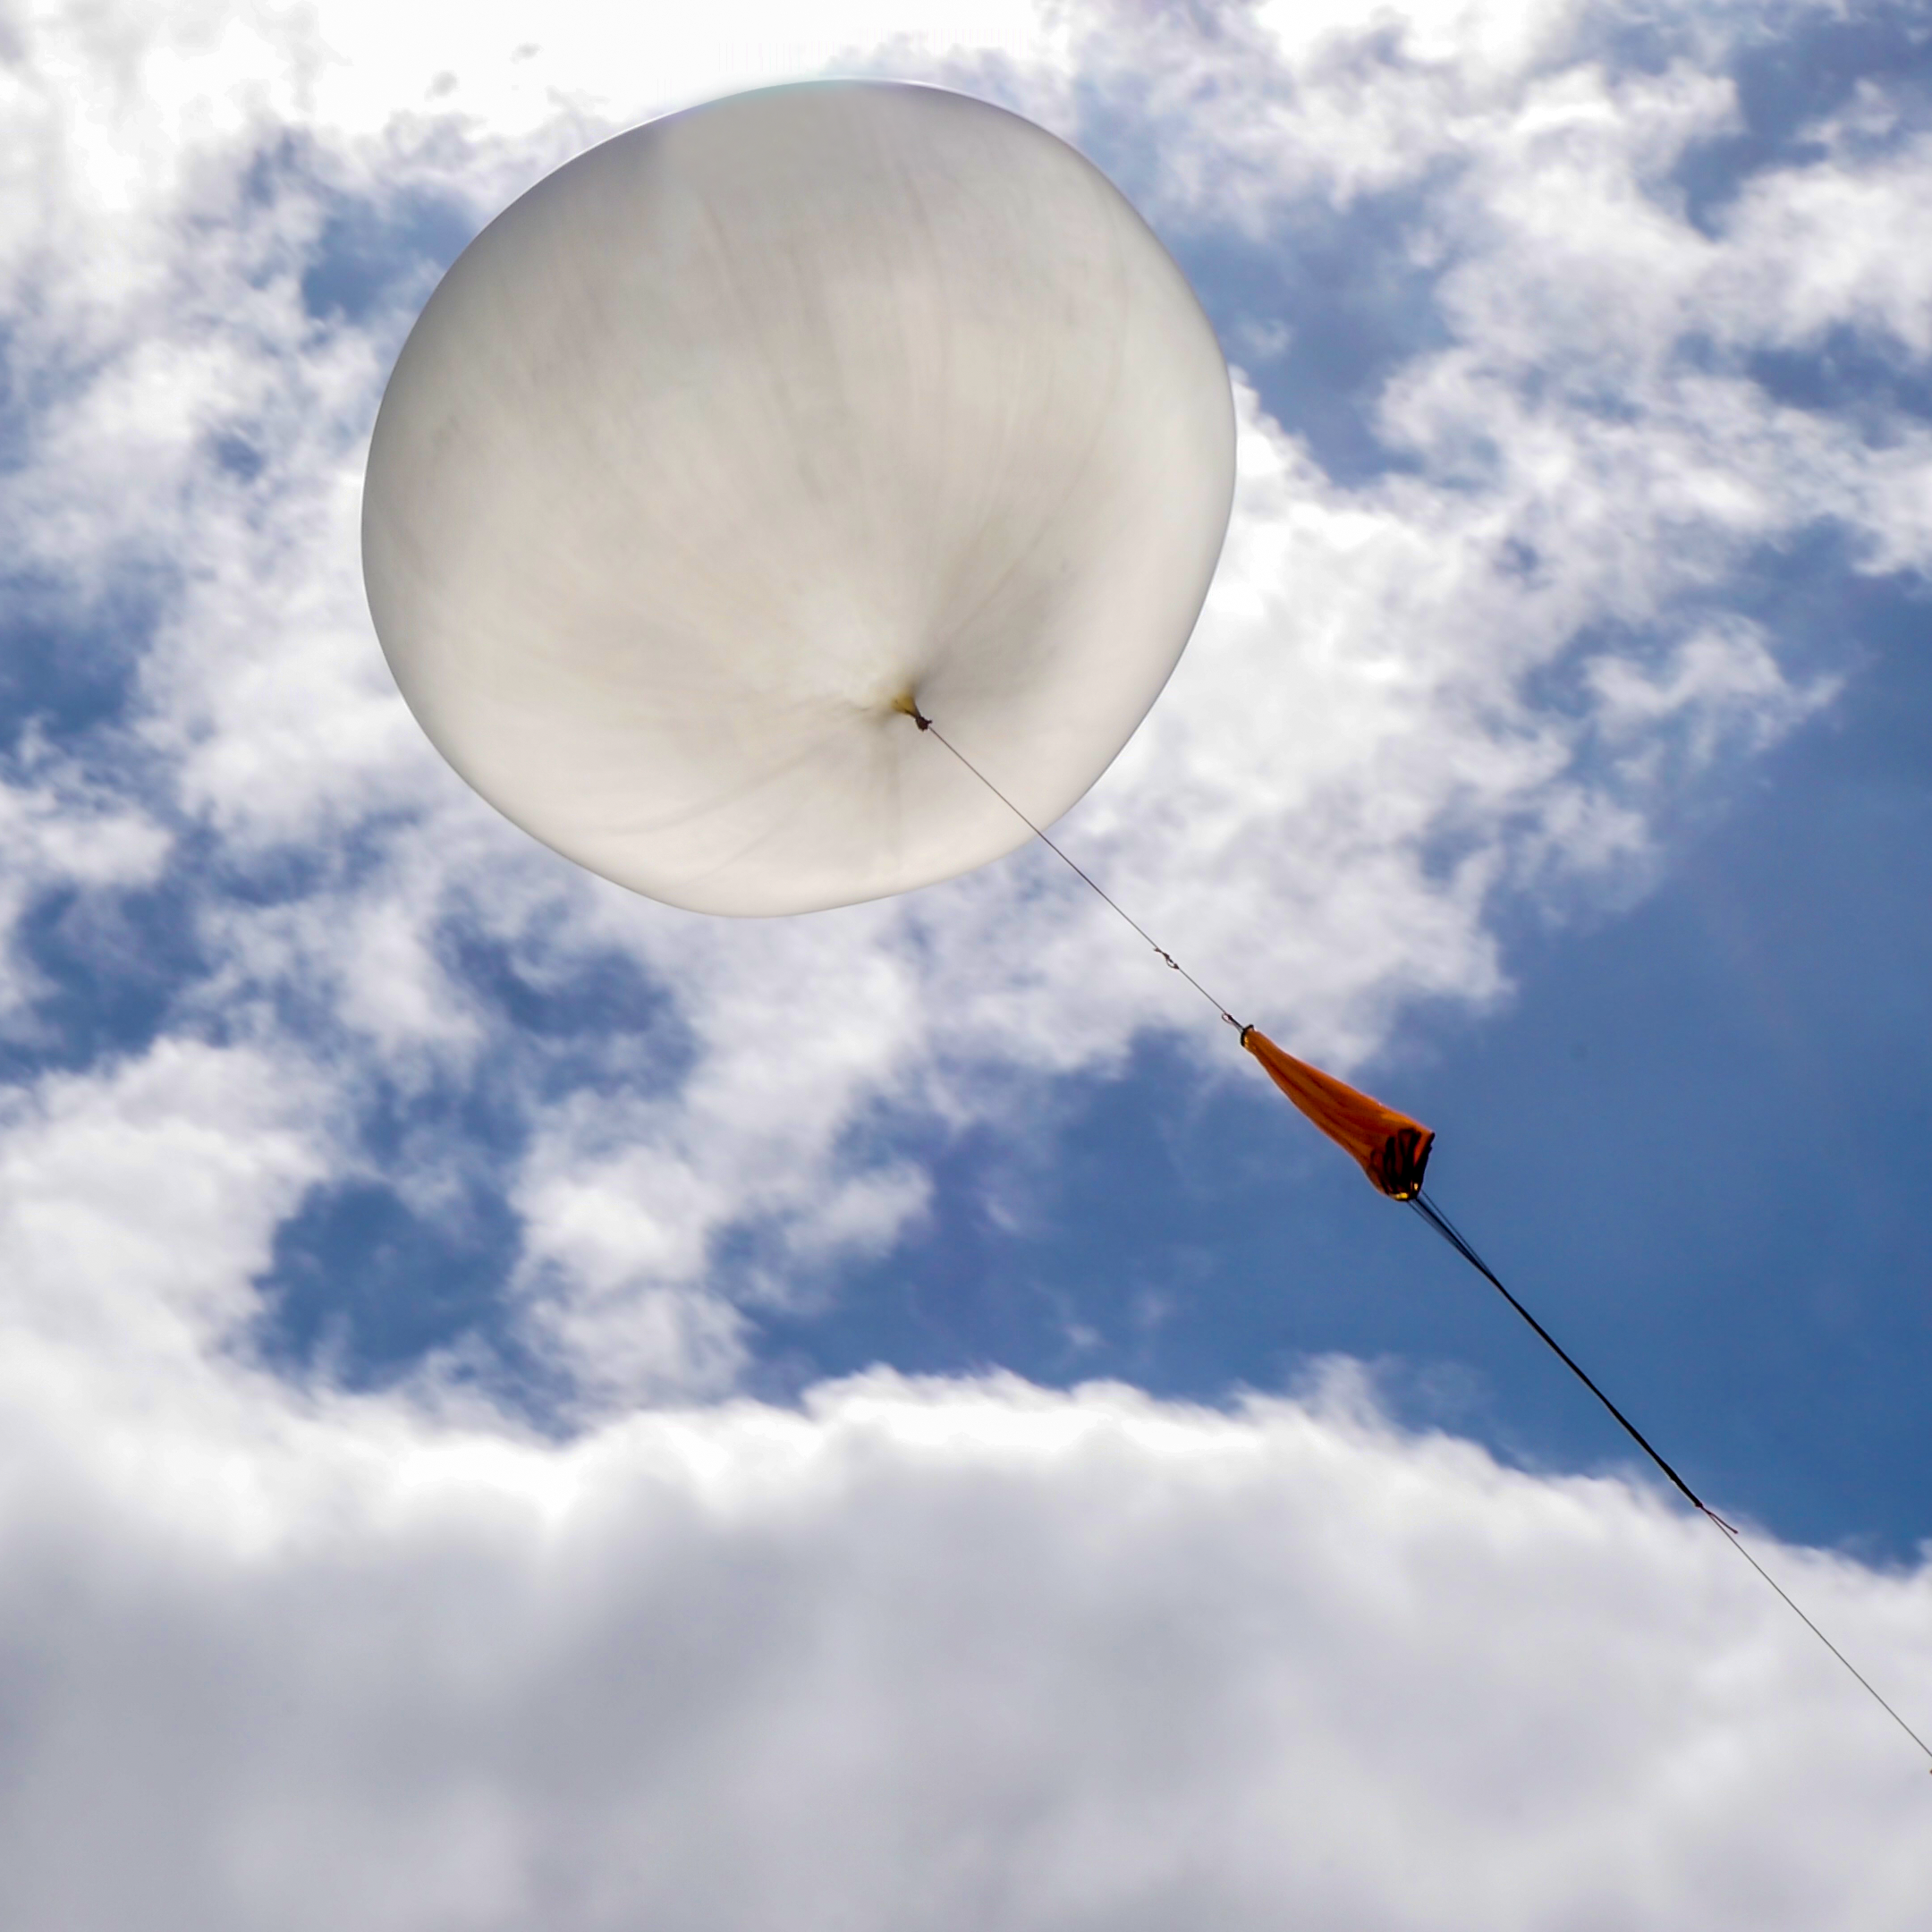 A latex meteorological balloon against a blue sky with clouds